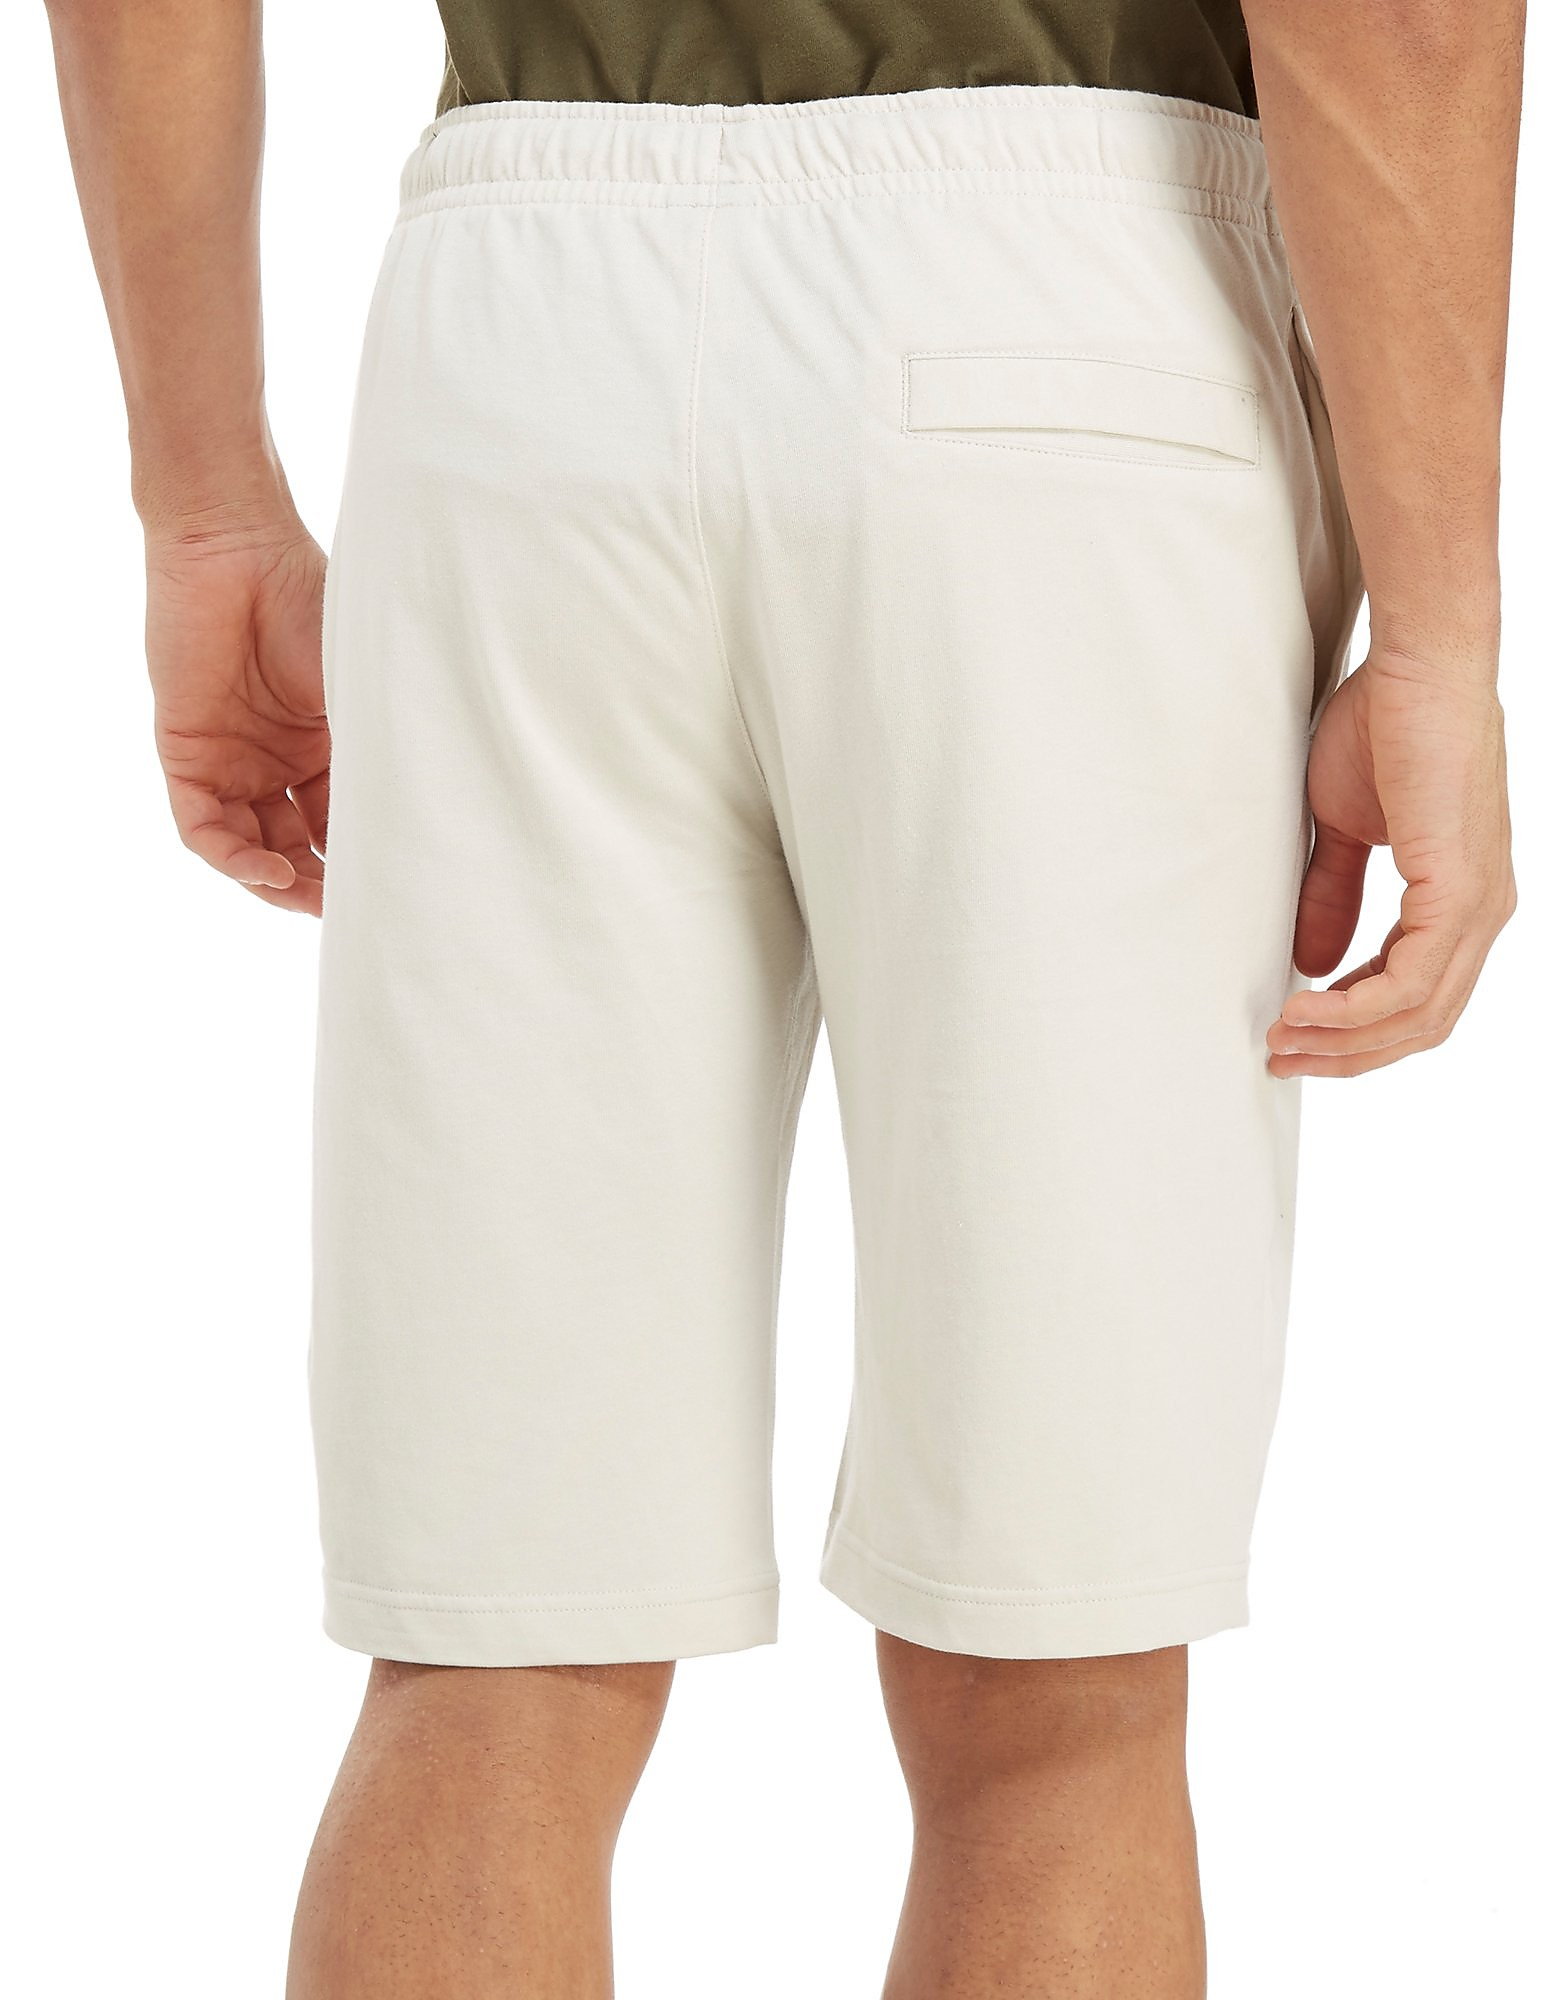 Nike Foundation Shorts